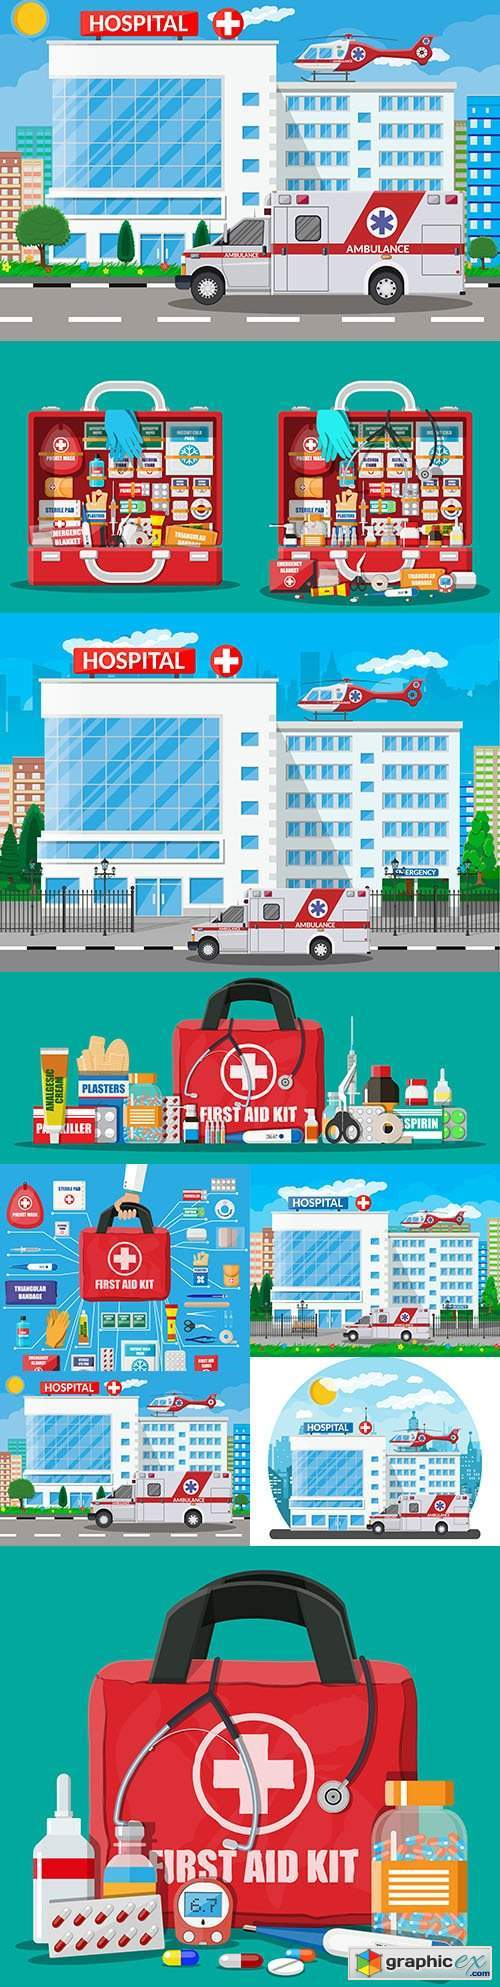 Hospital with ambulance and medical suitcase with tools